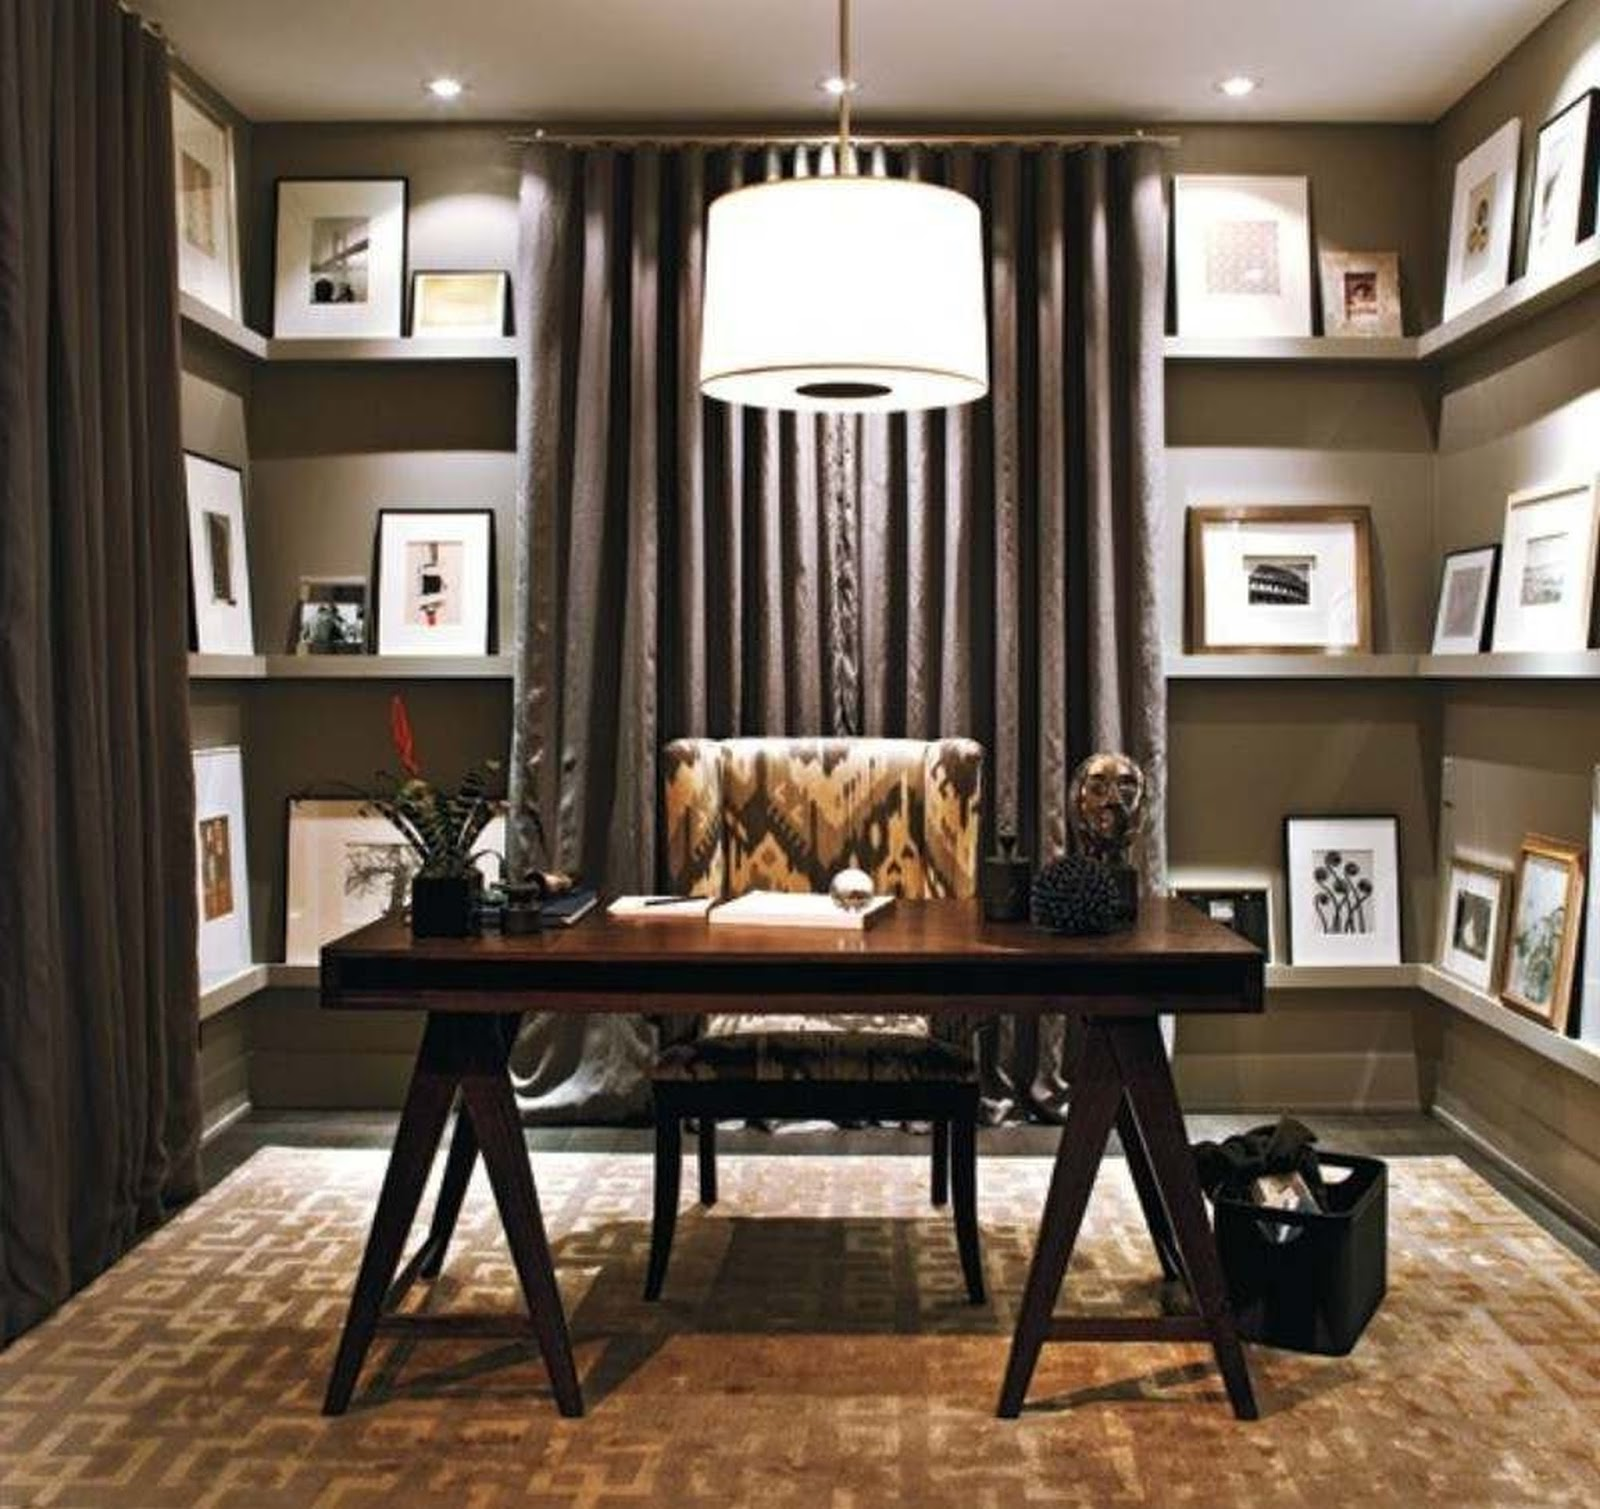 Home Design Ideas Buch: 5 Tips How To Decorating An Artistic Home Office